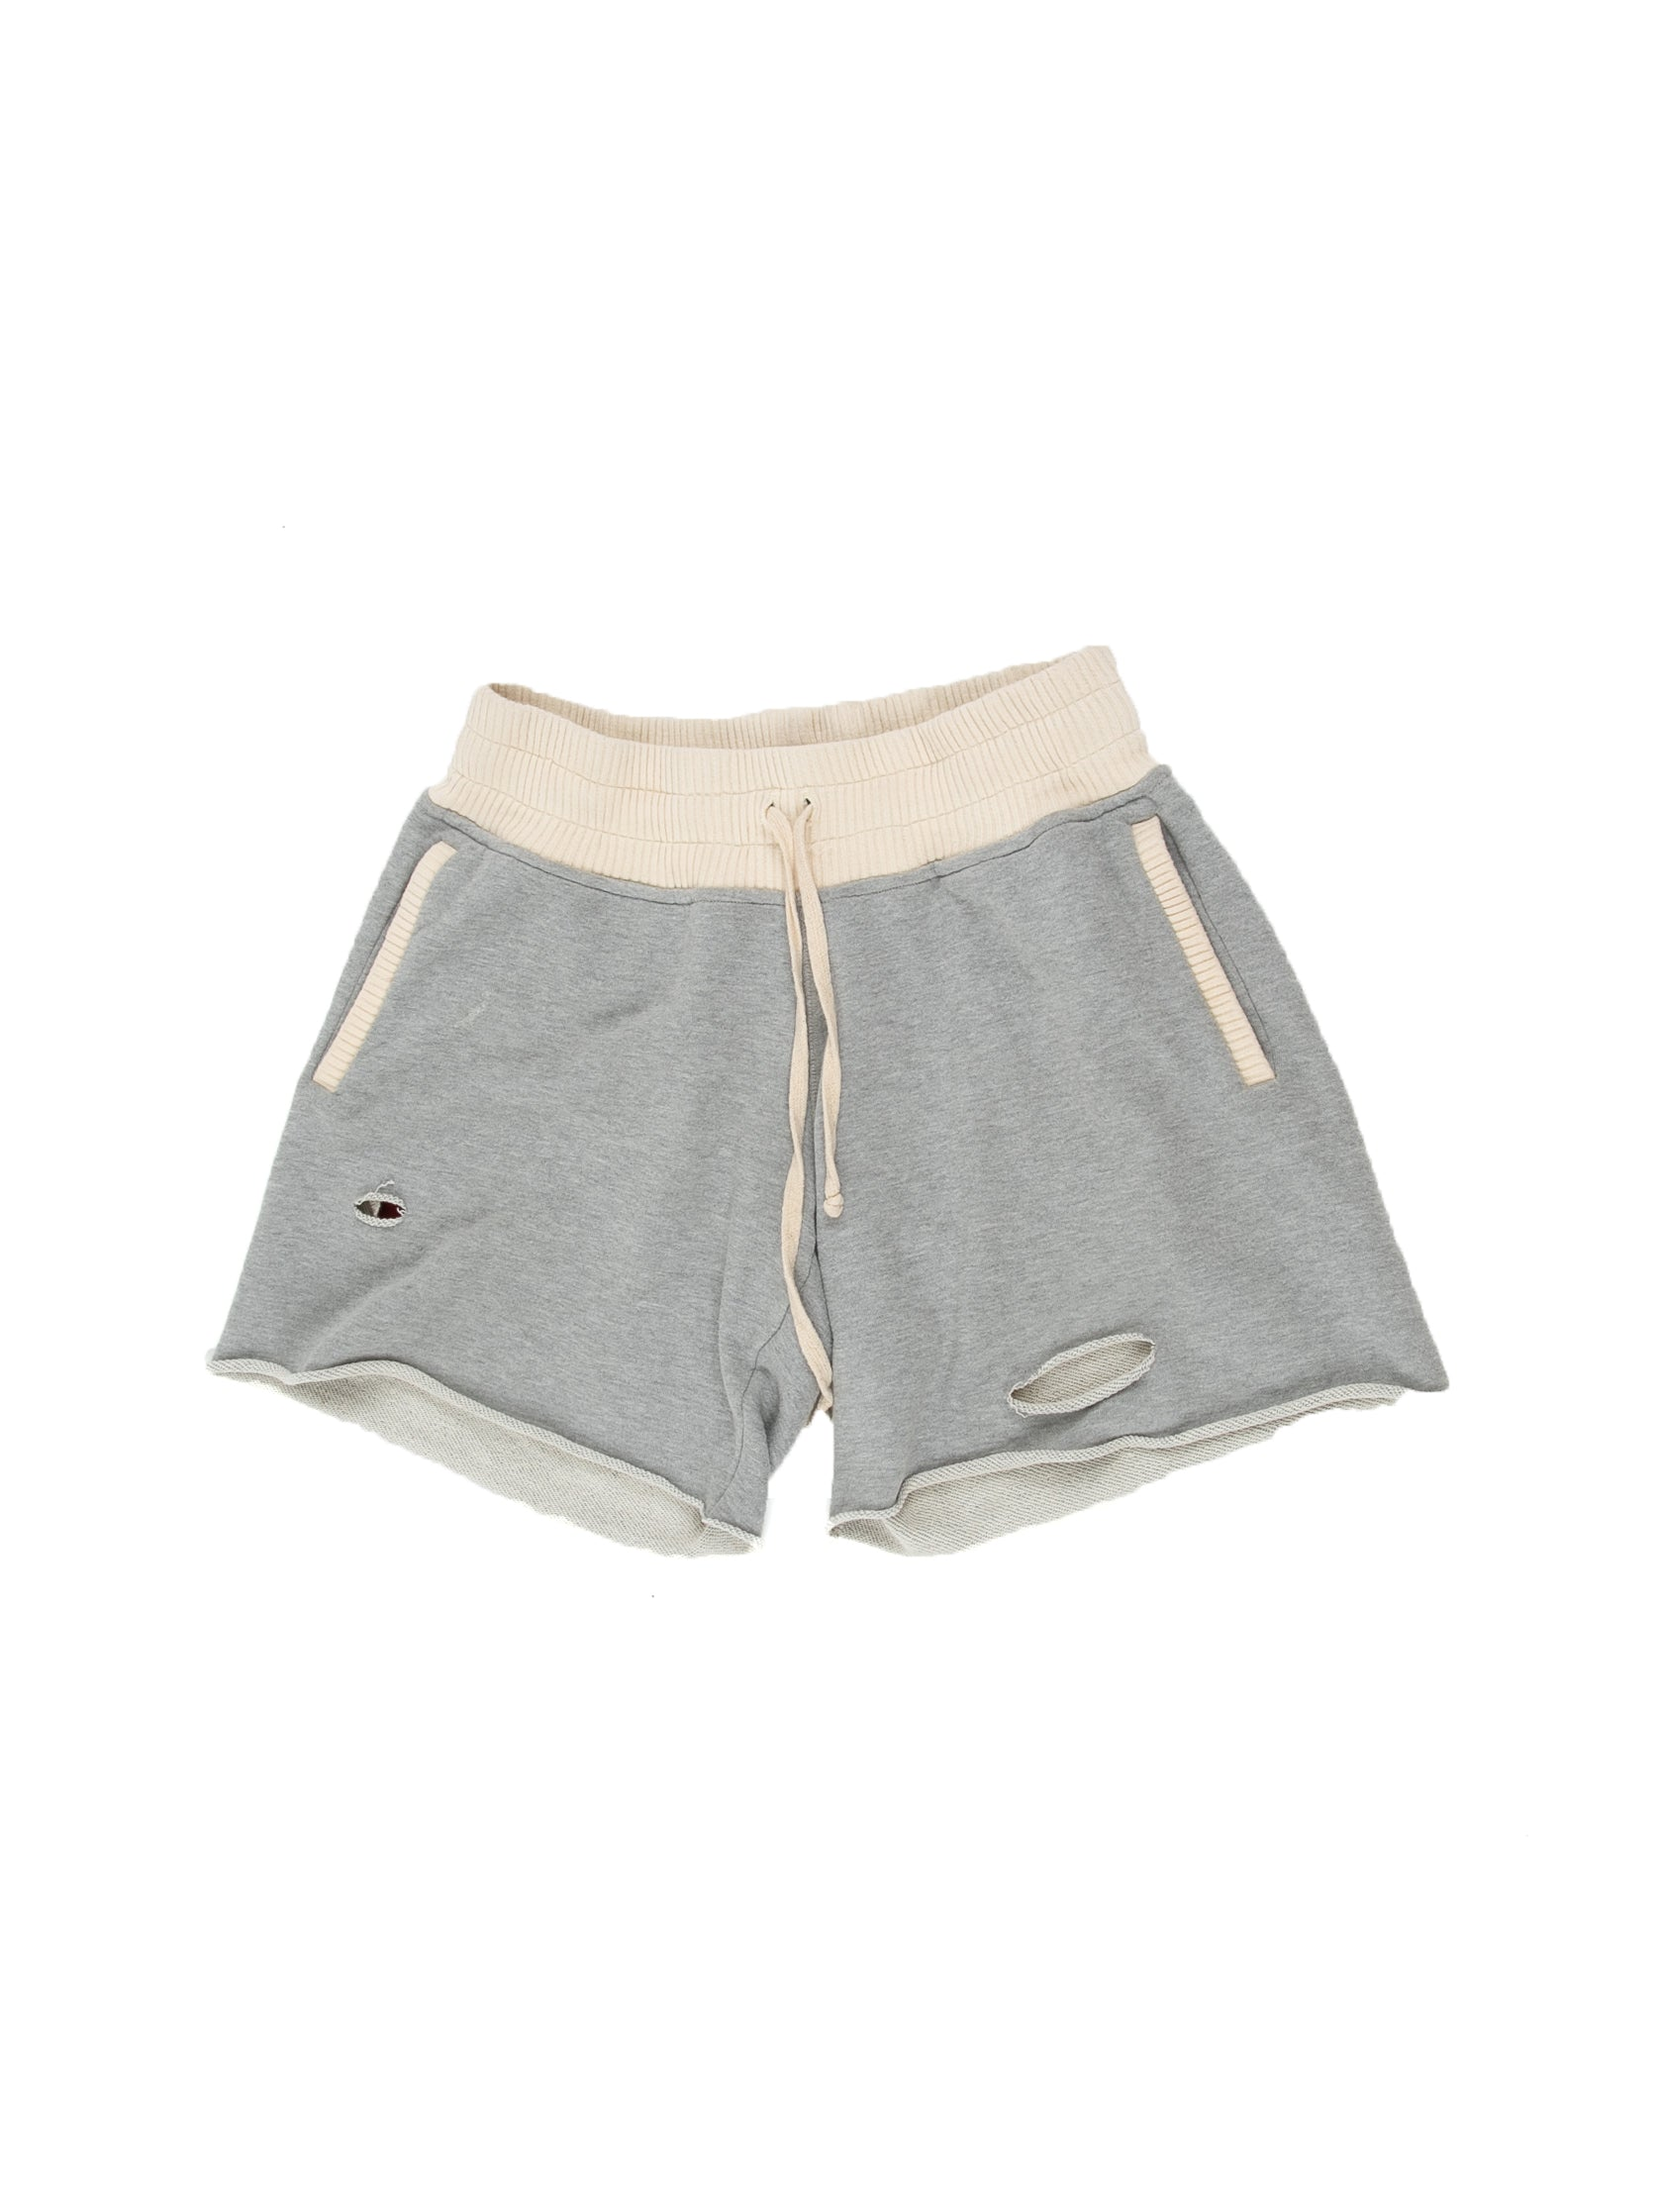 Terry Short in Heather Grey